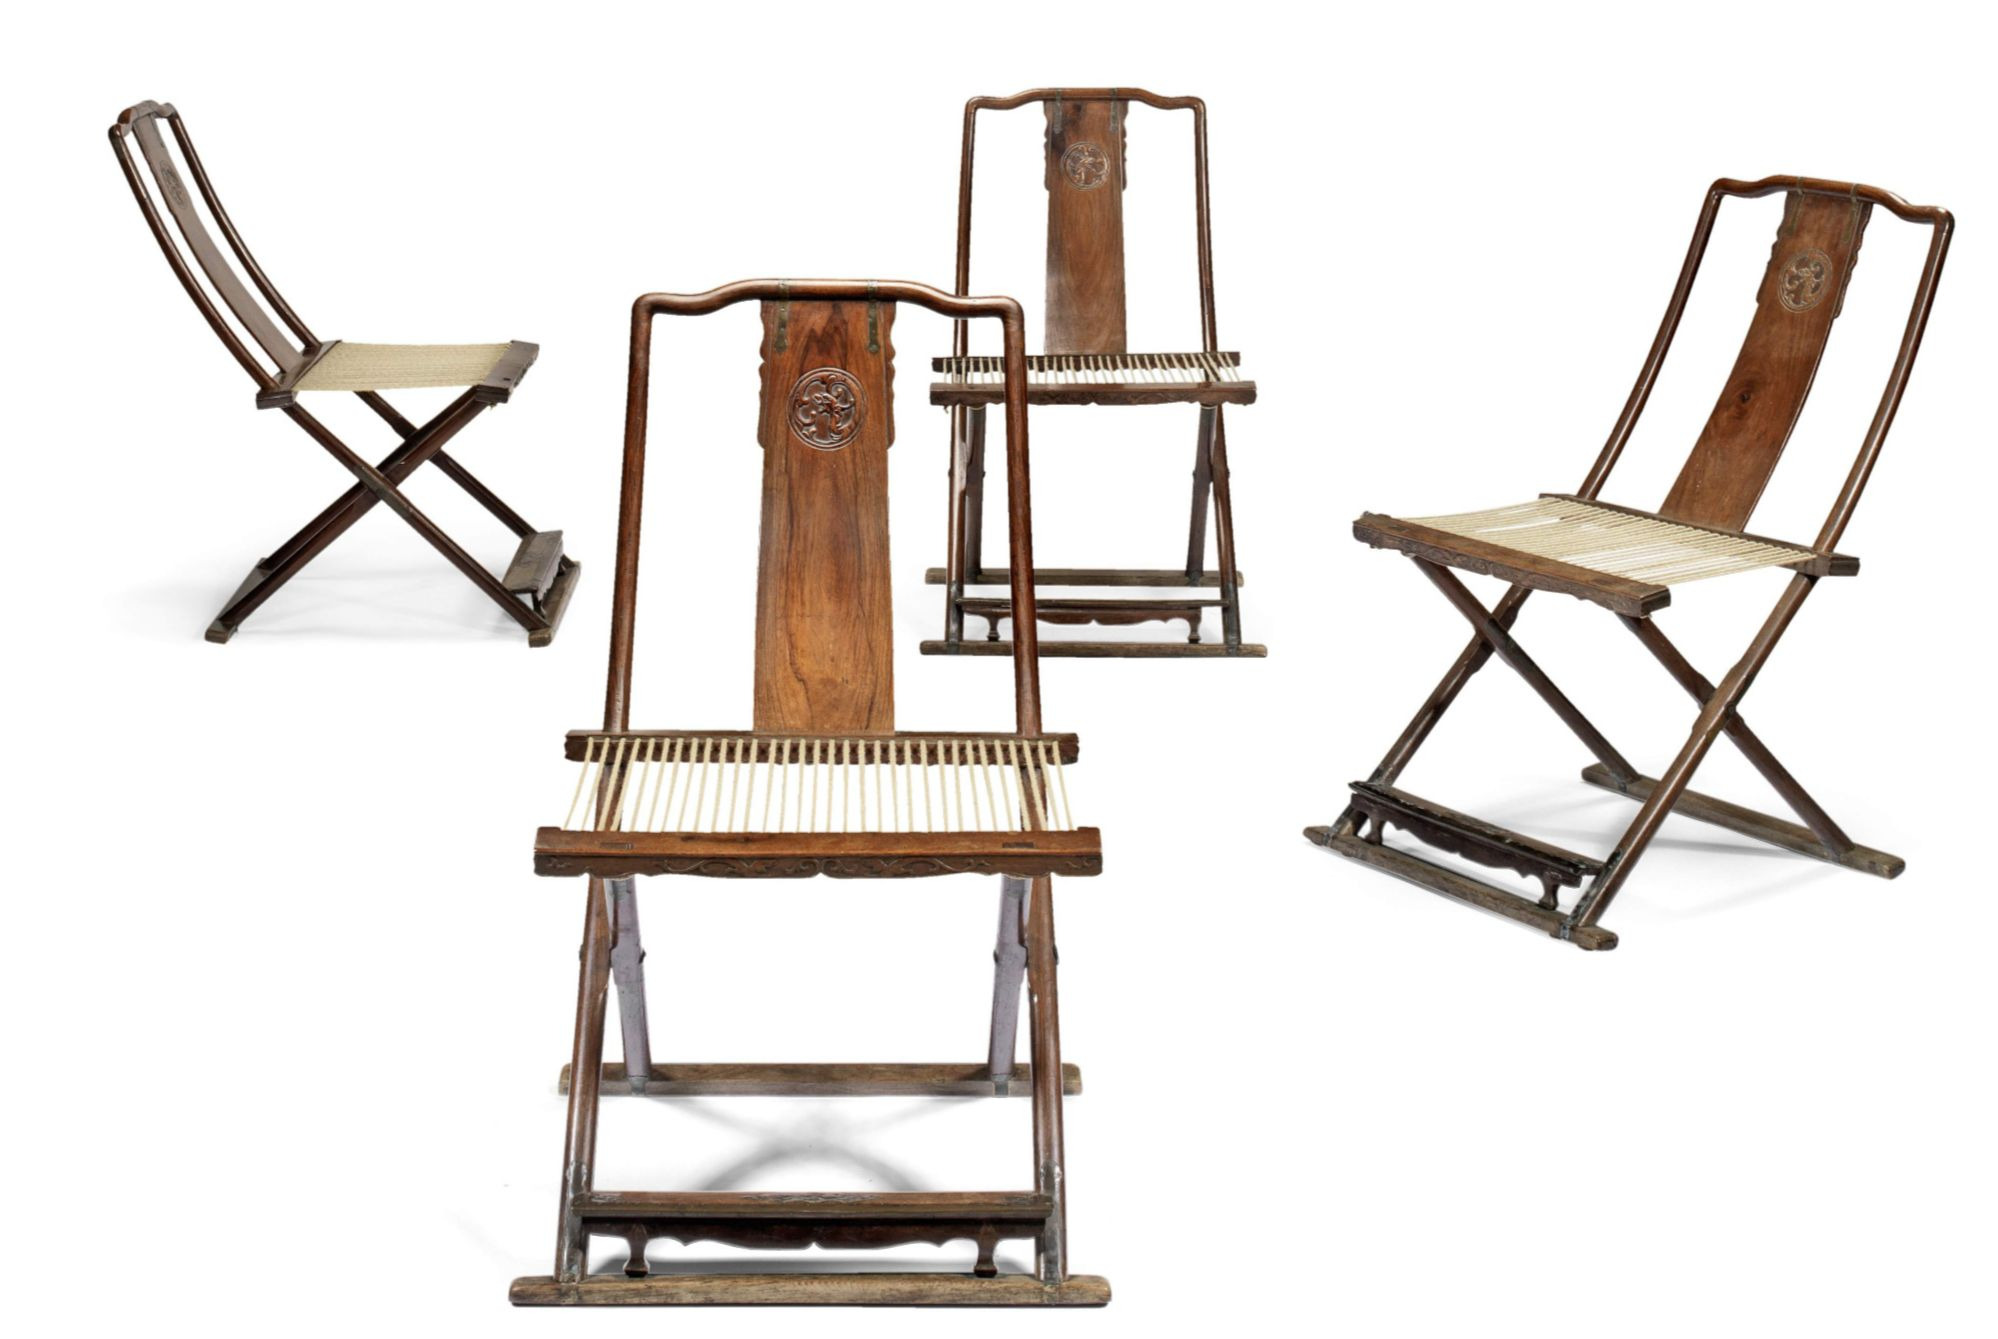 $6 9 Million For Rare Chinese Chairs At Bonhams Chinese Art Sale